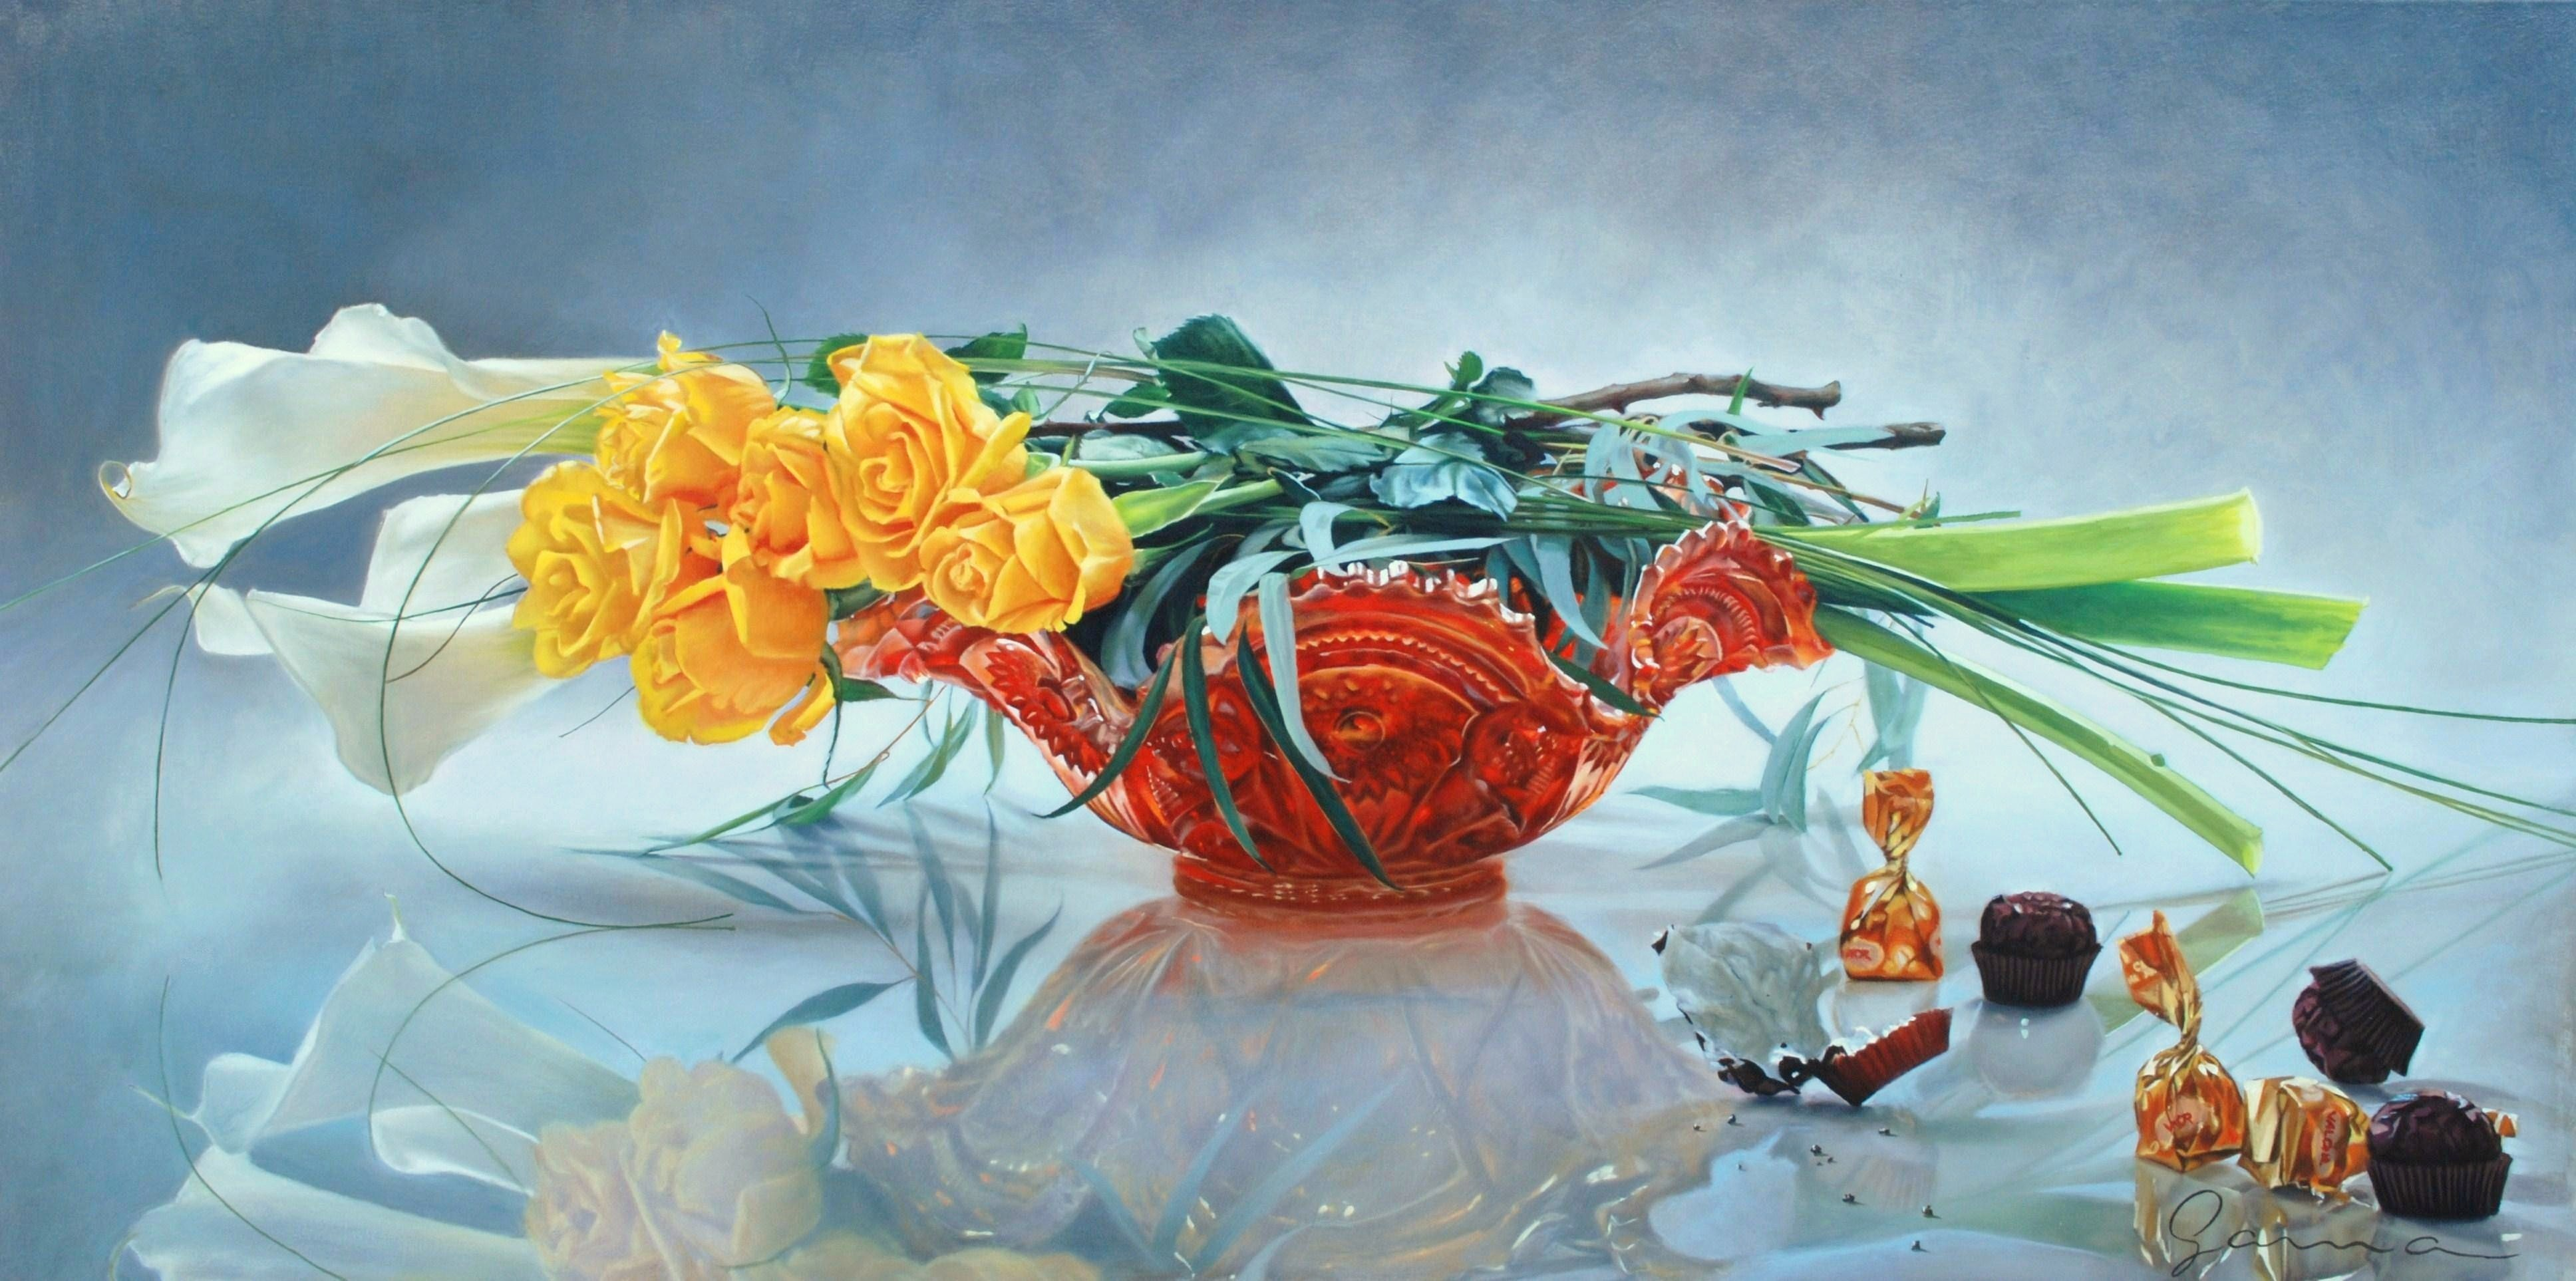 Roses+and+Callas+on+carnival+vase,+Oil,+24x48+ins.